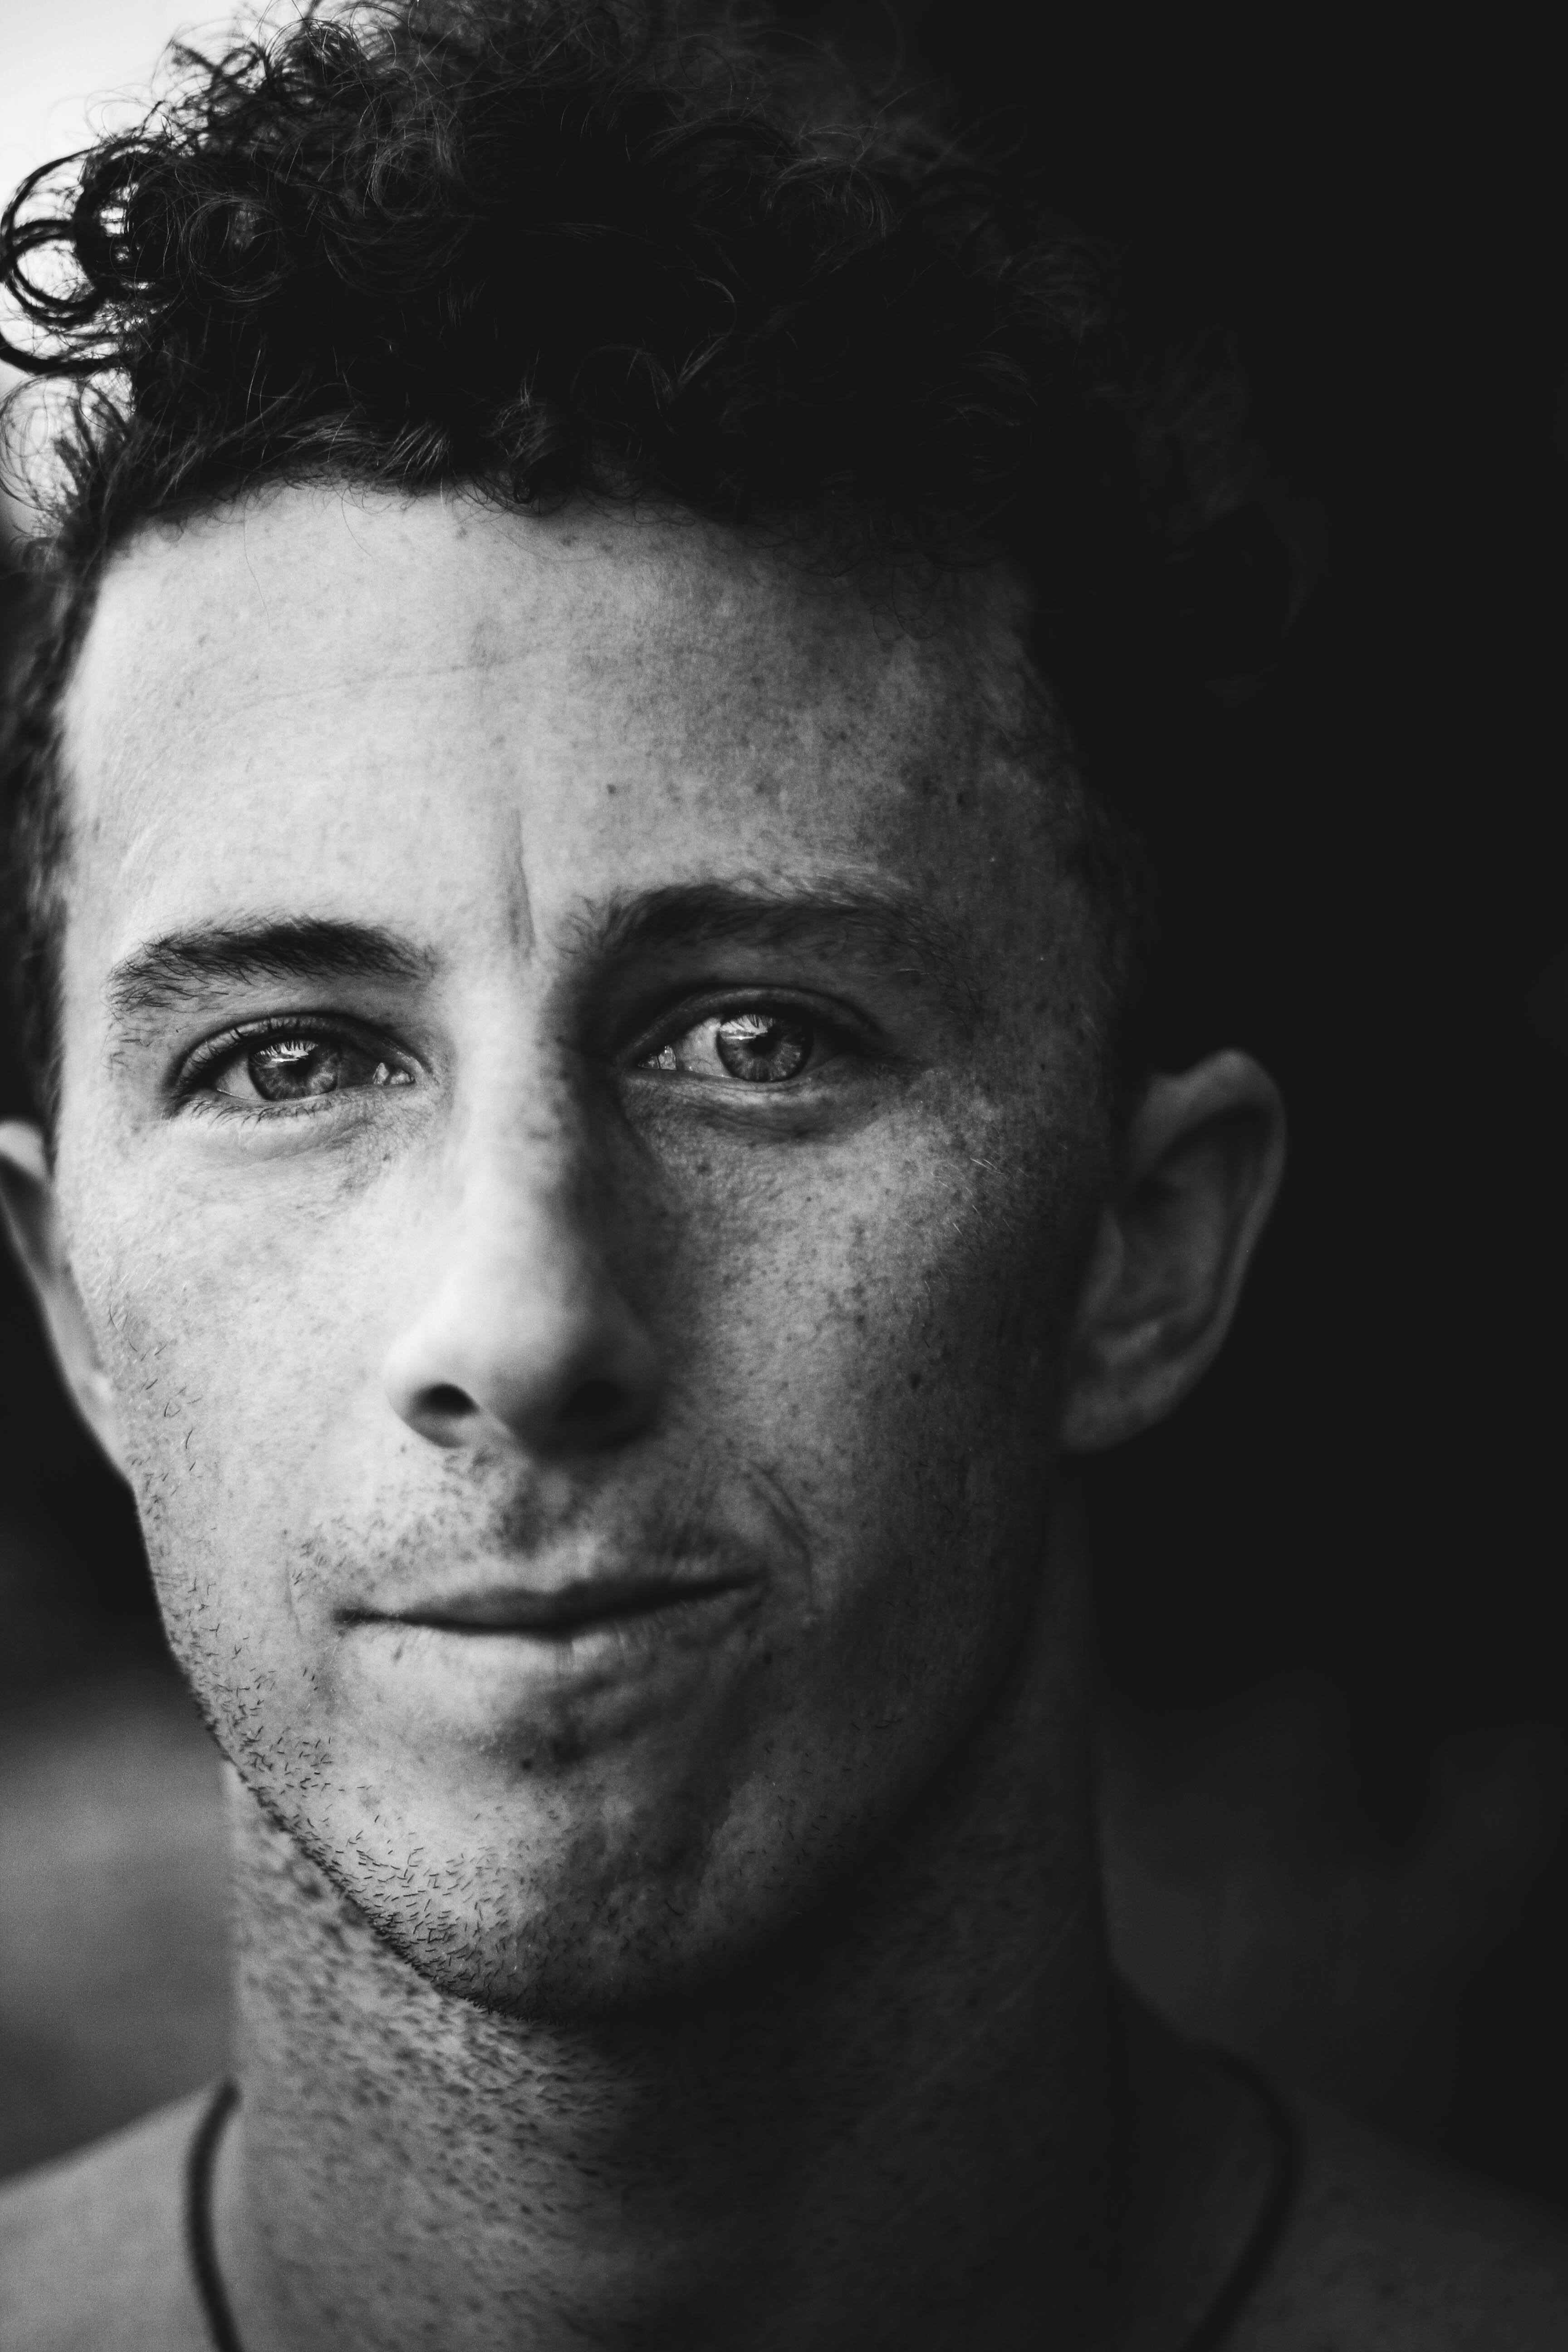 Black and white close up shot of dark-haired young man with freckles and curly hair